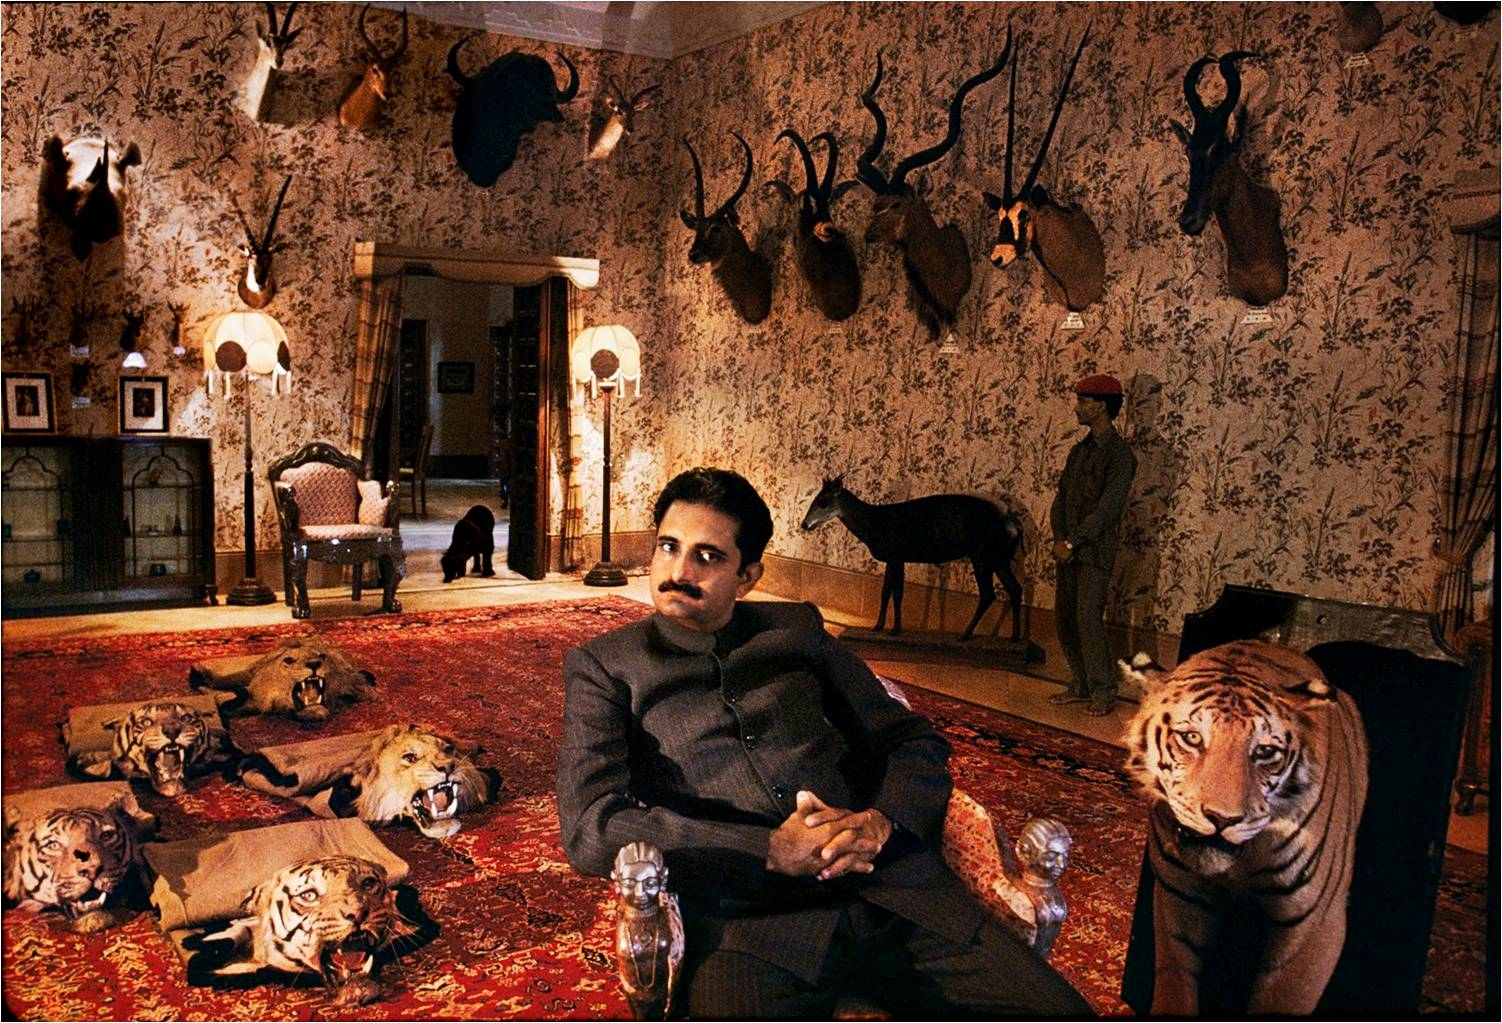 Harshvardhan Singh of Dungarpur at home, 1996. (Photograph by Steve McCurry. Courtesy Phaidon/Roli Books)